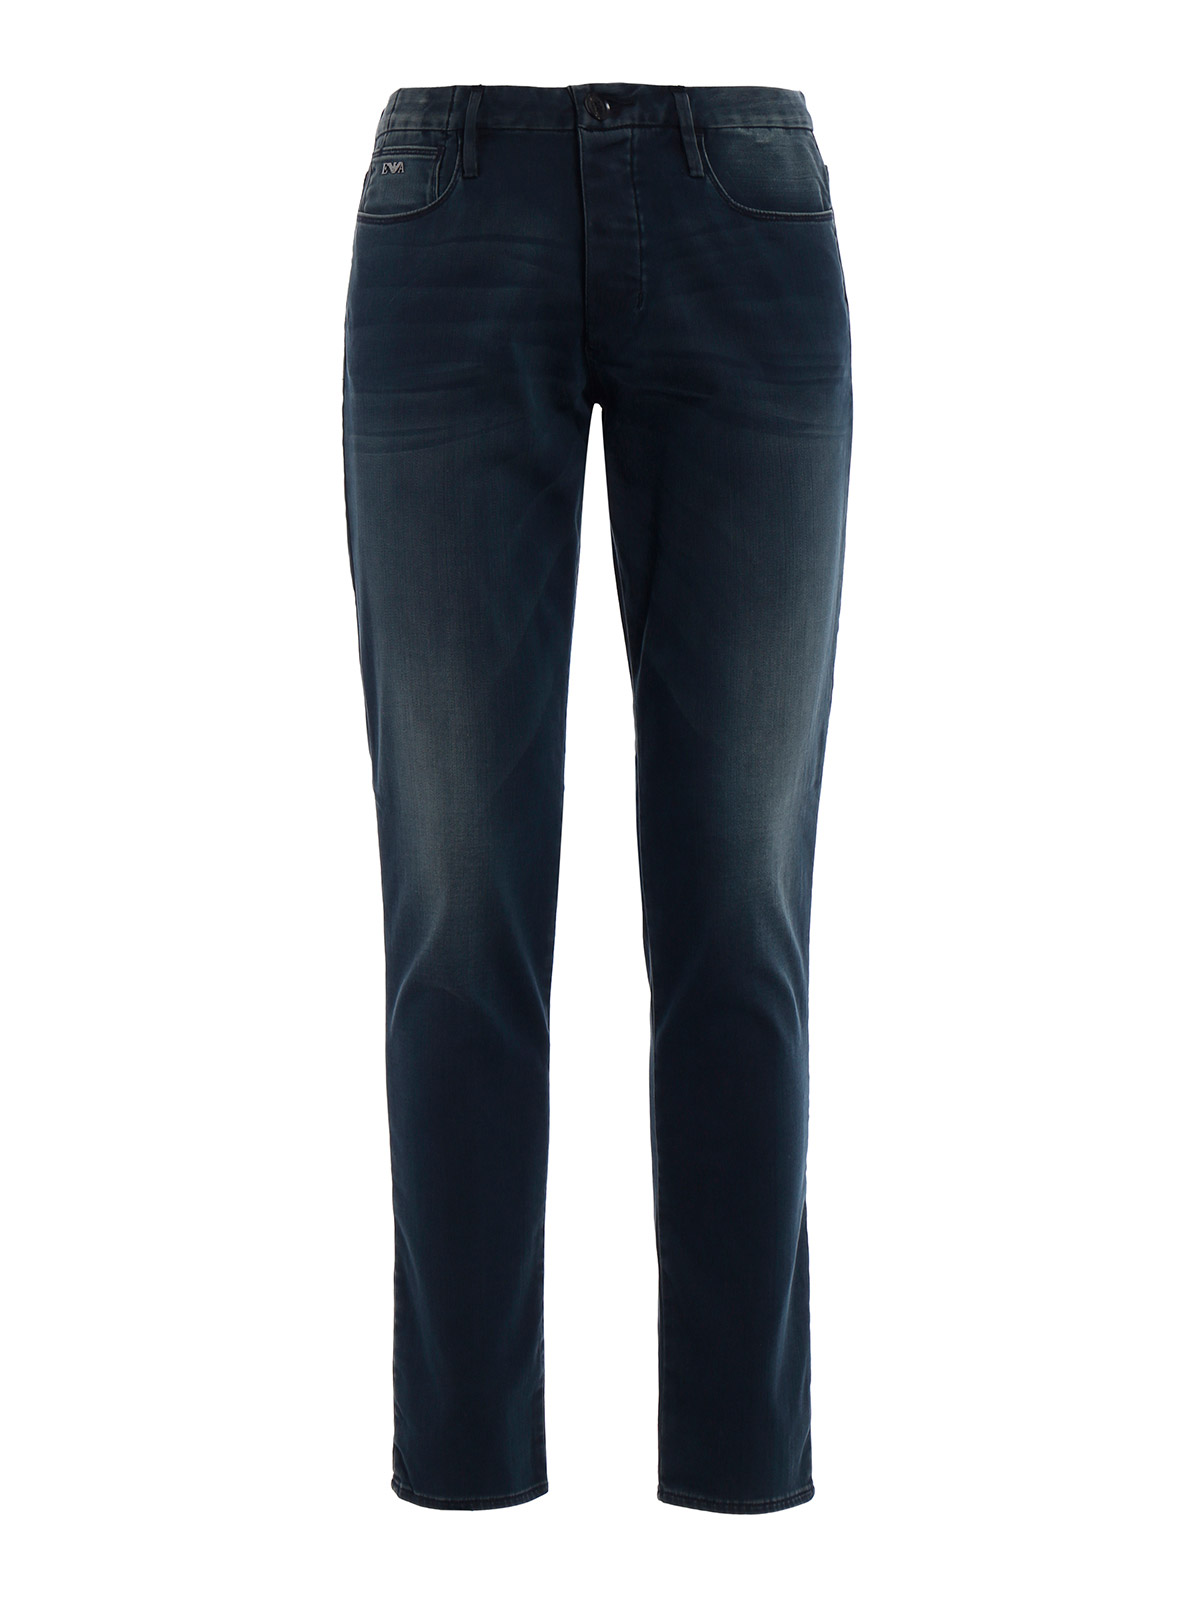 Picture of EMPORIO ARMANI | Men's J11 Skinny Fit Jeans